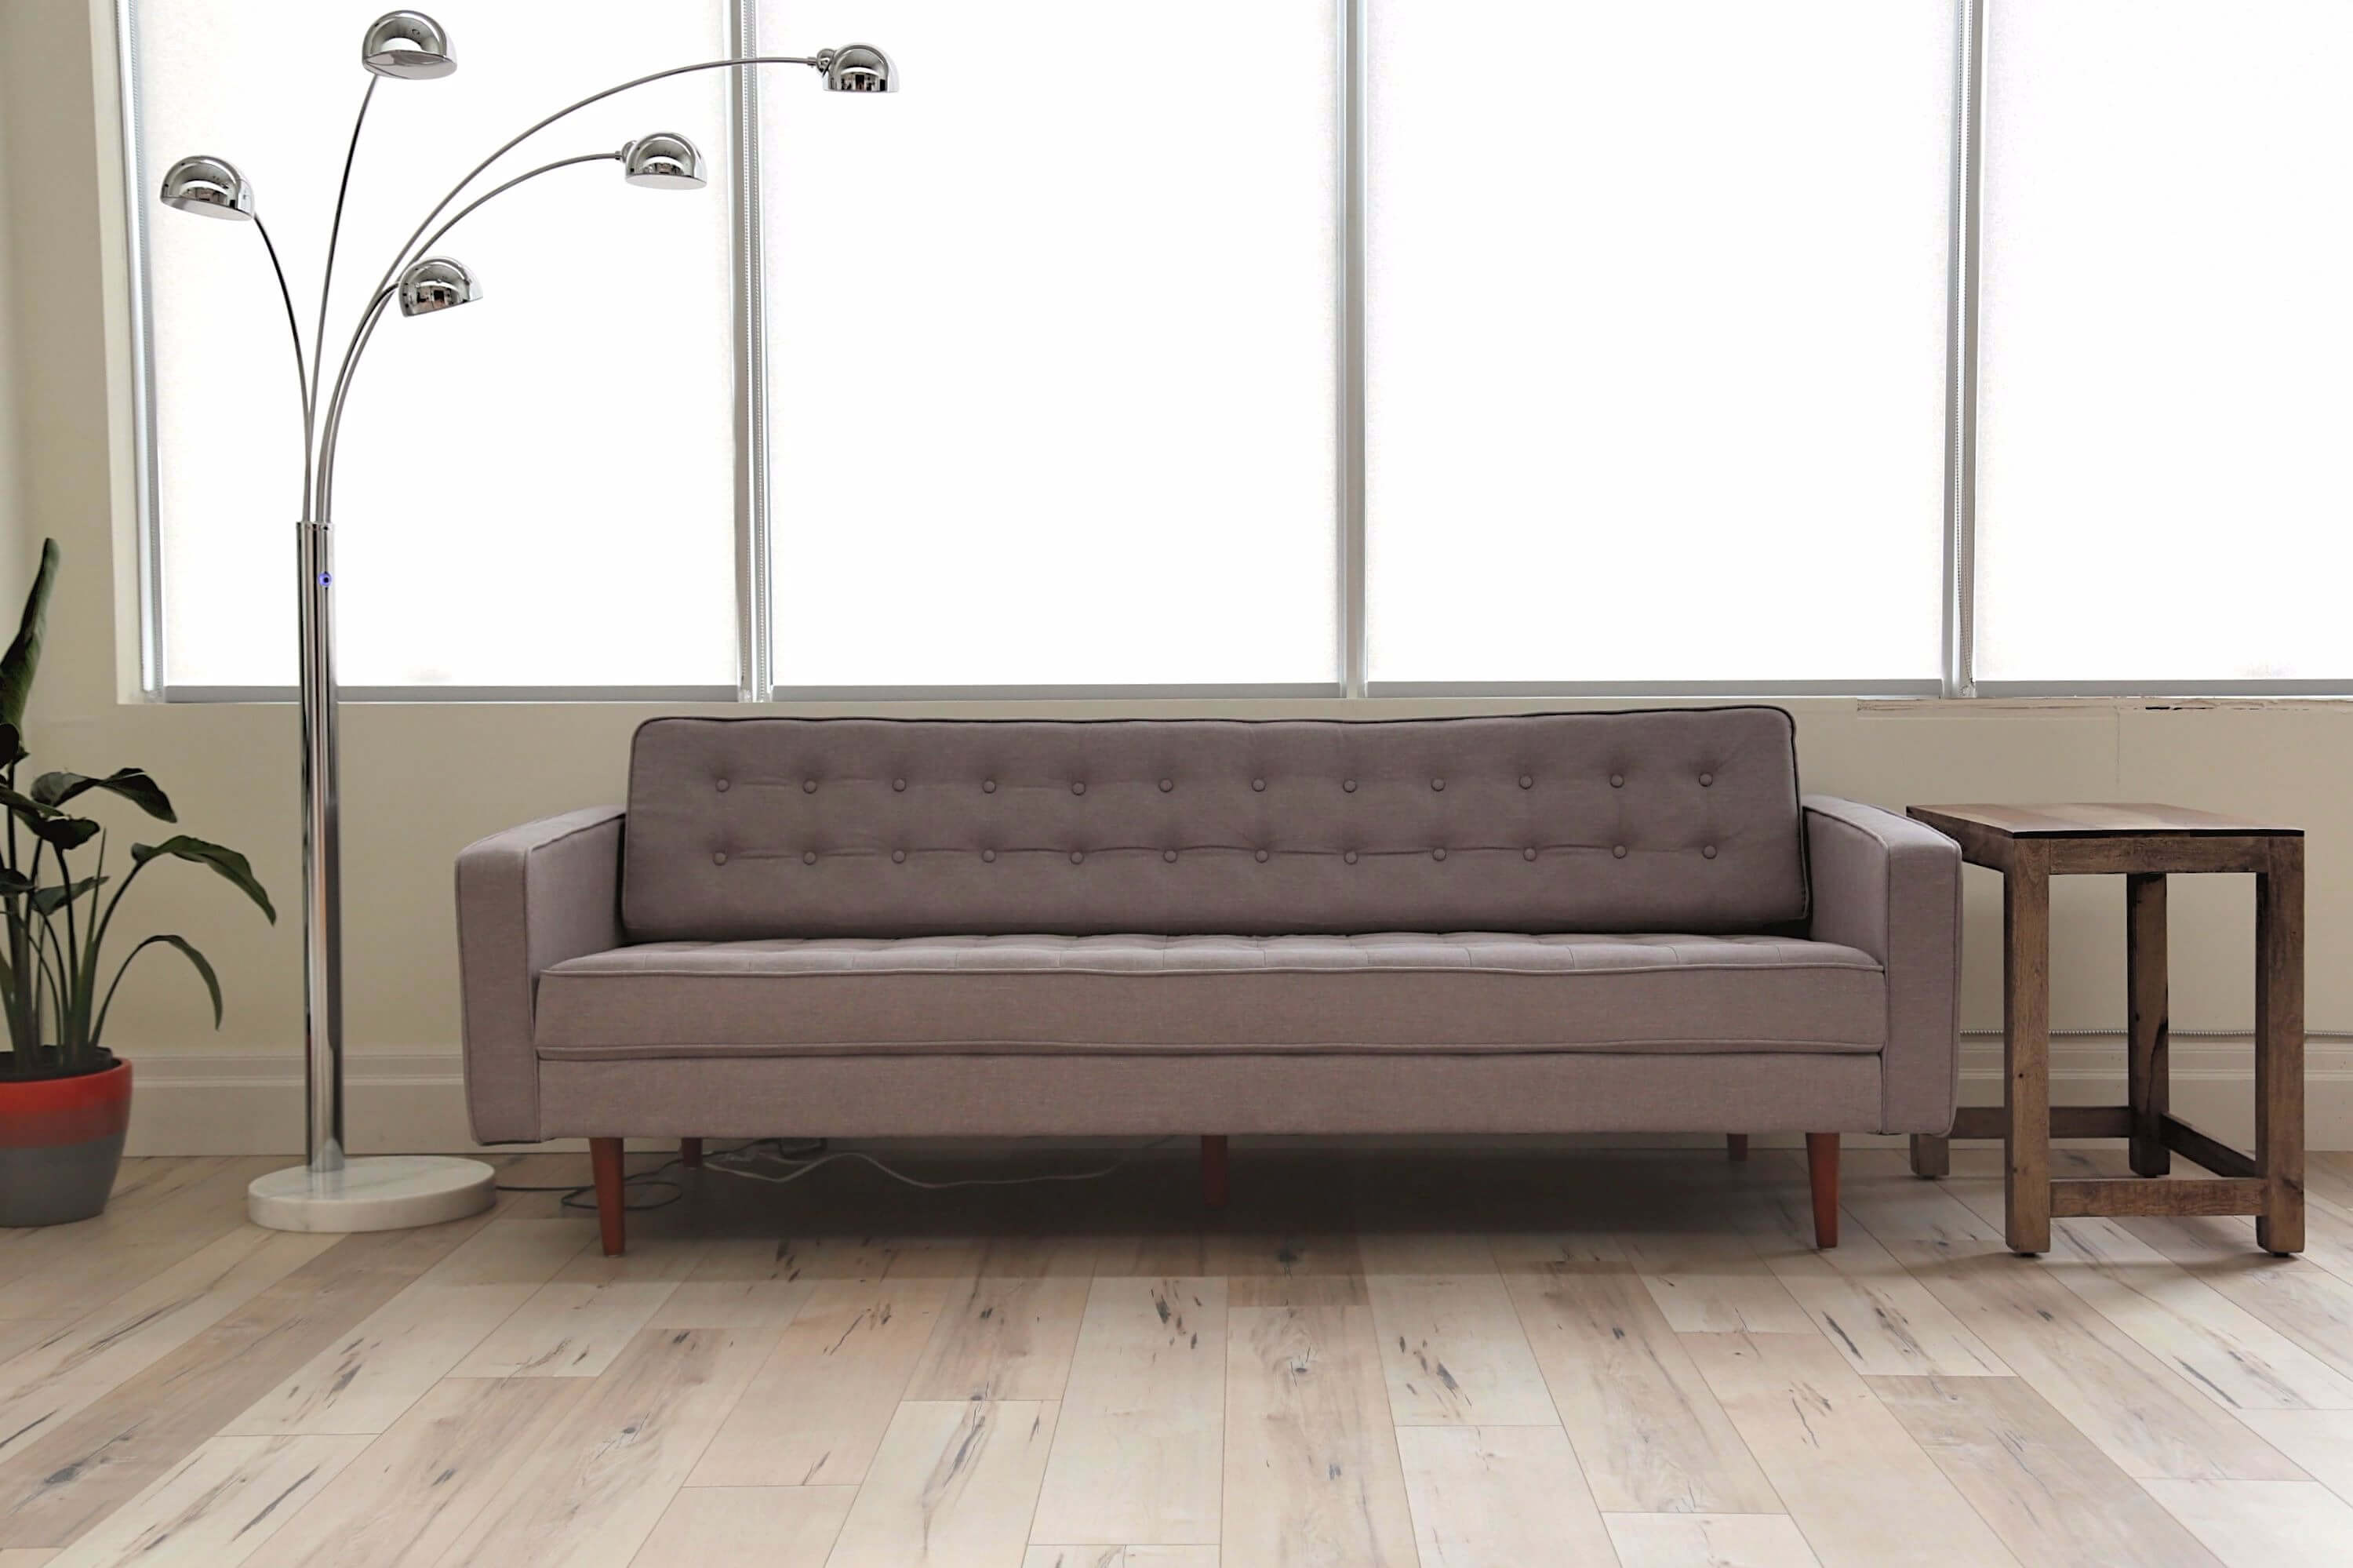 Sectional Sofas Kitchener Redecorating A Room With 500 Or Less Centre Staged